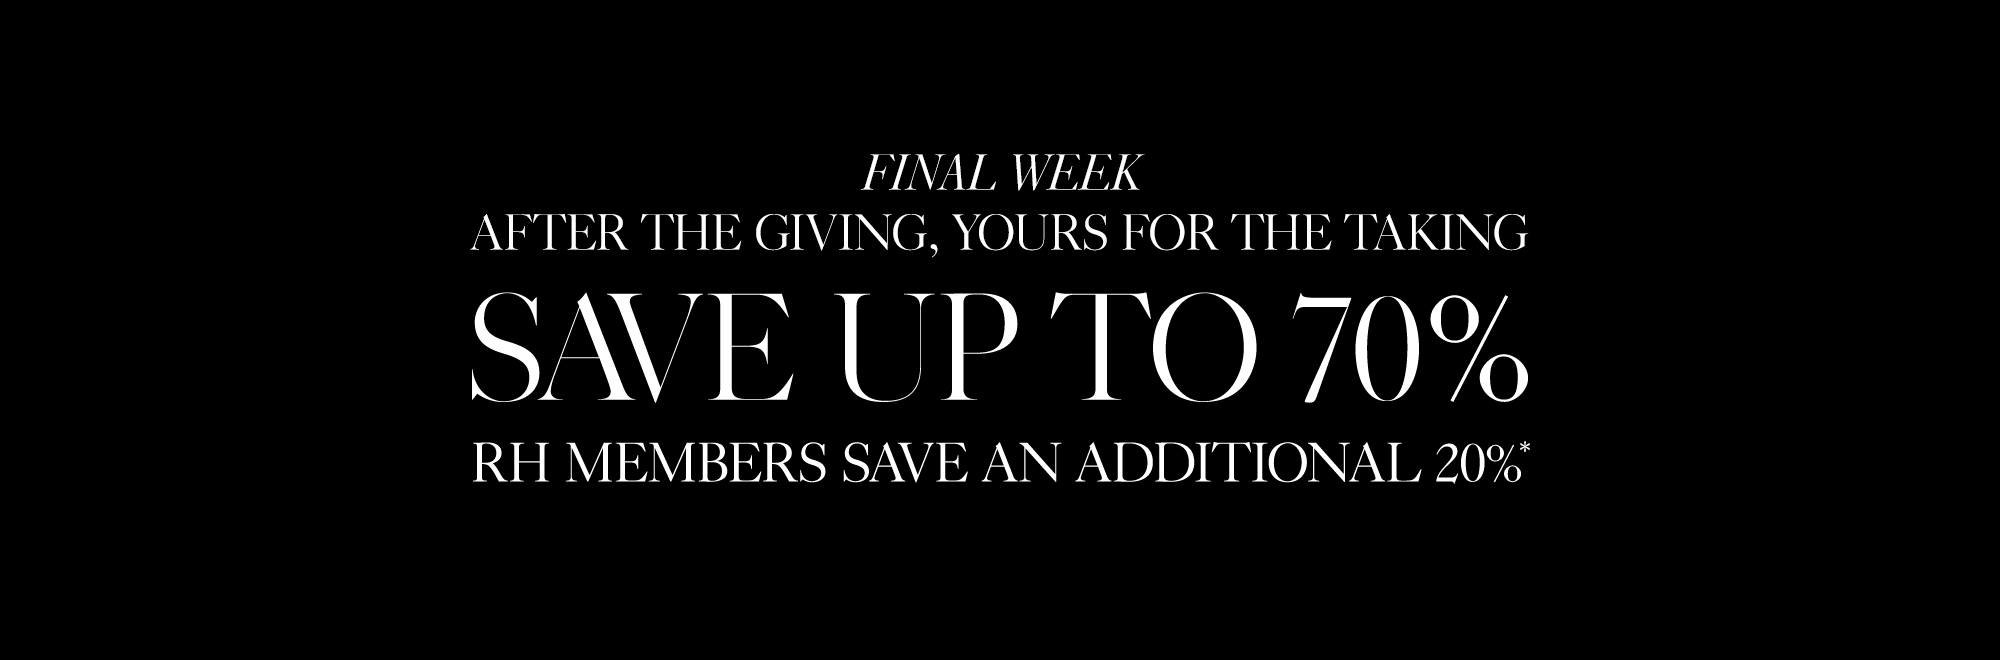 After The Giving, Yours For The Taking. Save up to 70%, RH Members Save An Additional 20%*